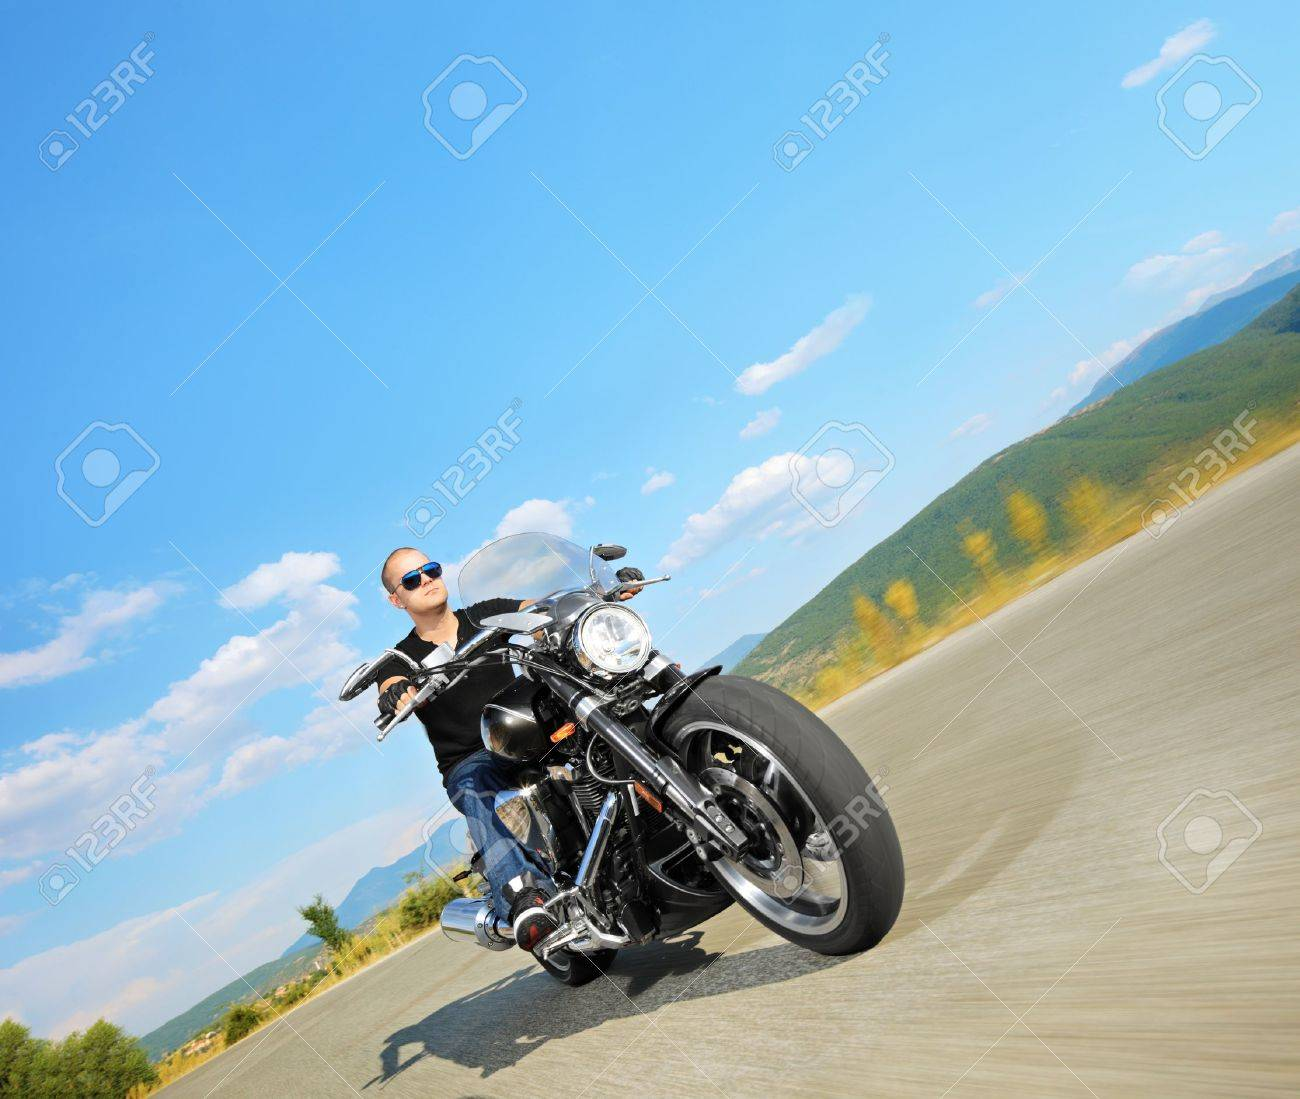 Biker riding a customized motorcycle on an open road Stock Photo - 15636591